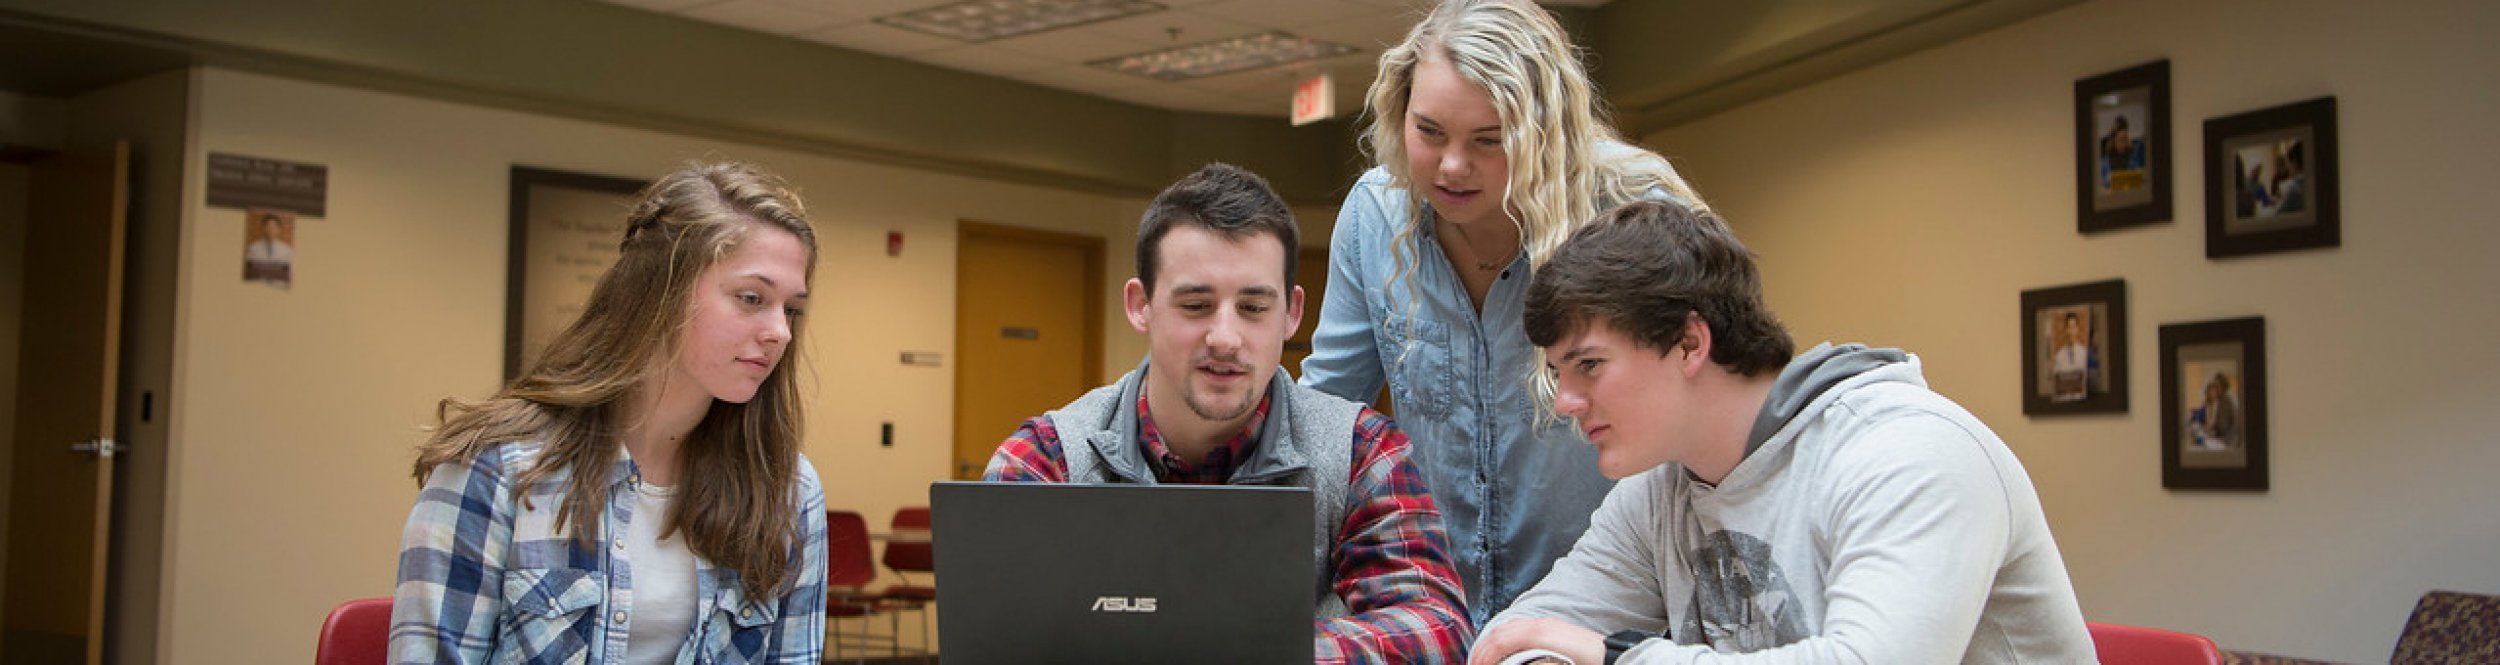 A group of students gathered around a computer.